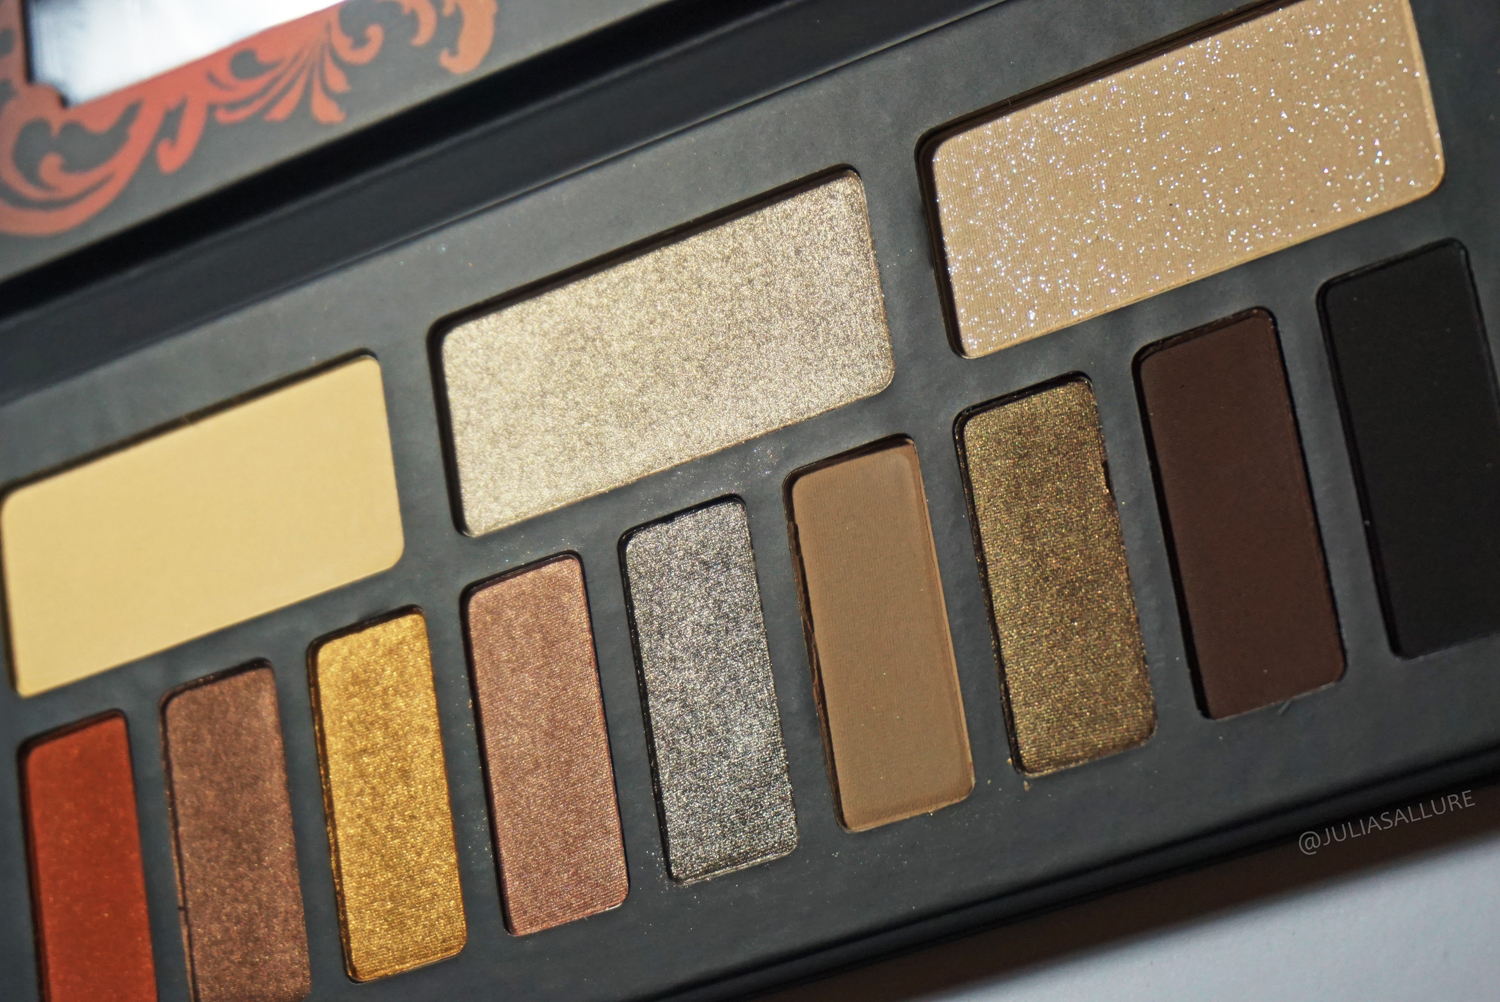 Kat Von D Monarch Eyeshadow Palette Review Amp Swatches